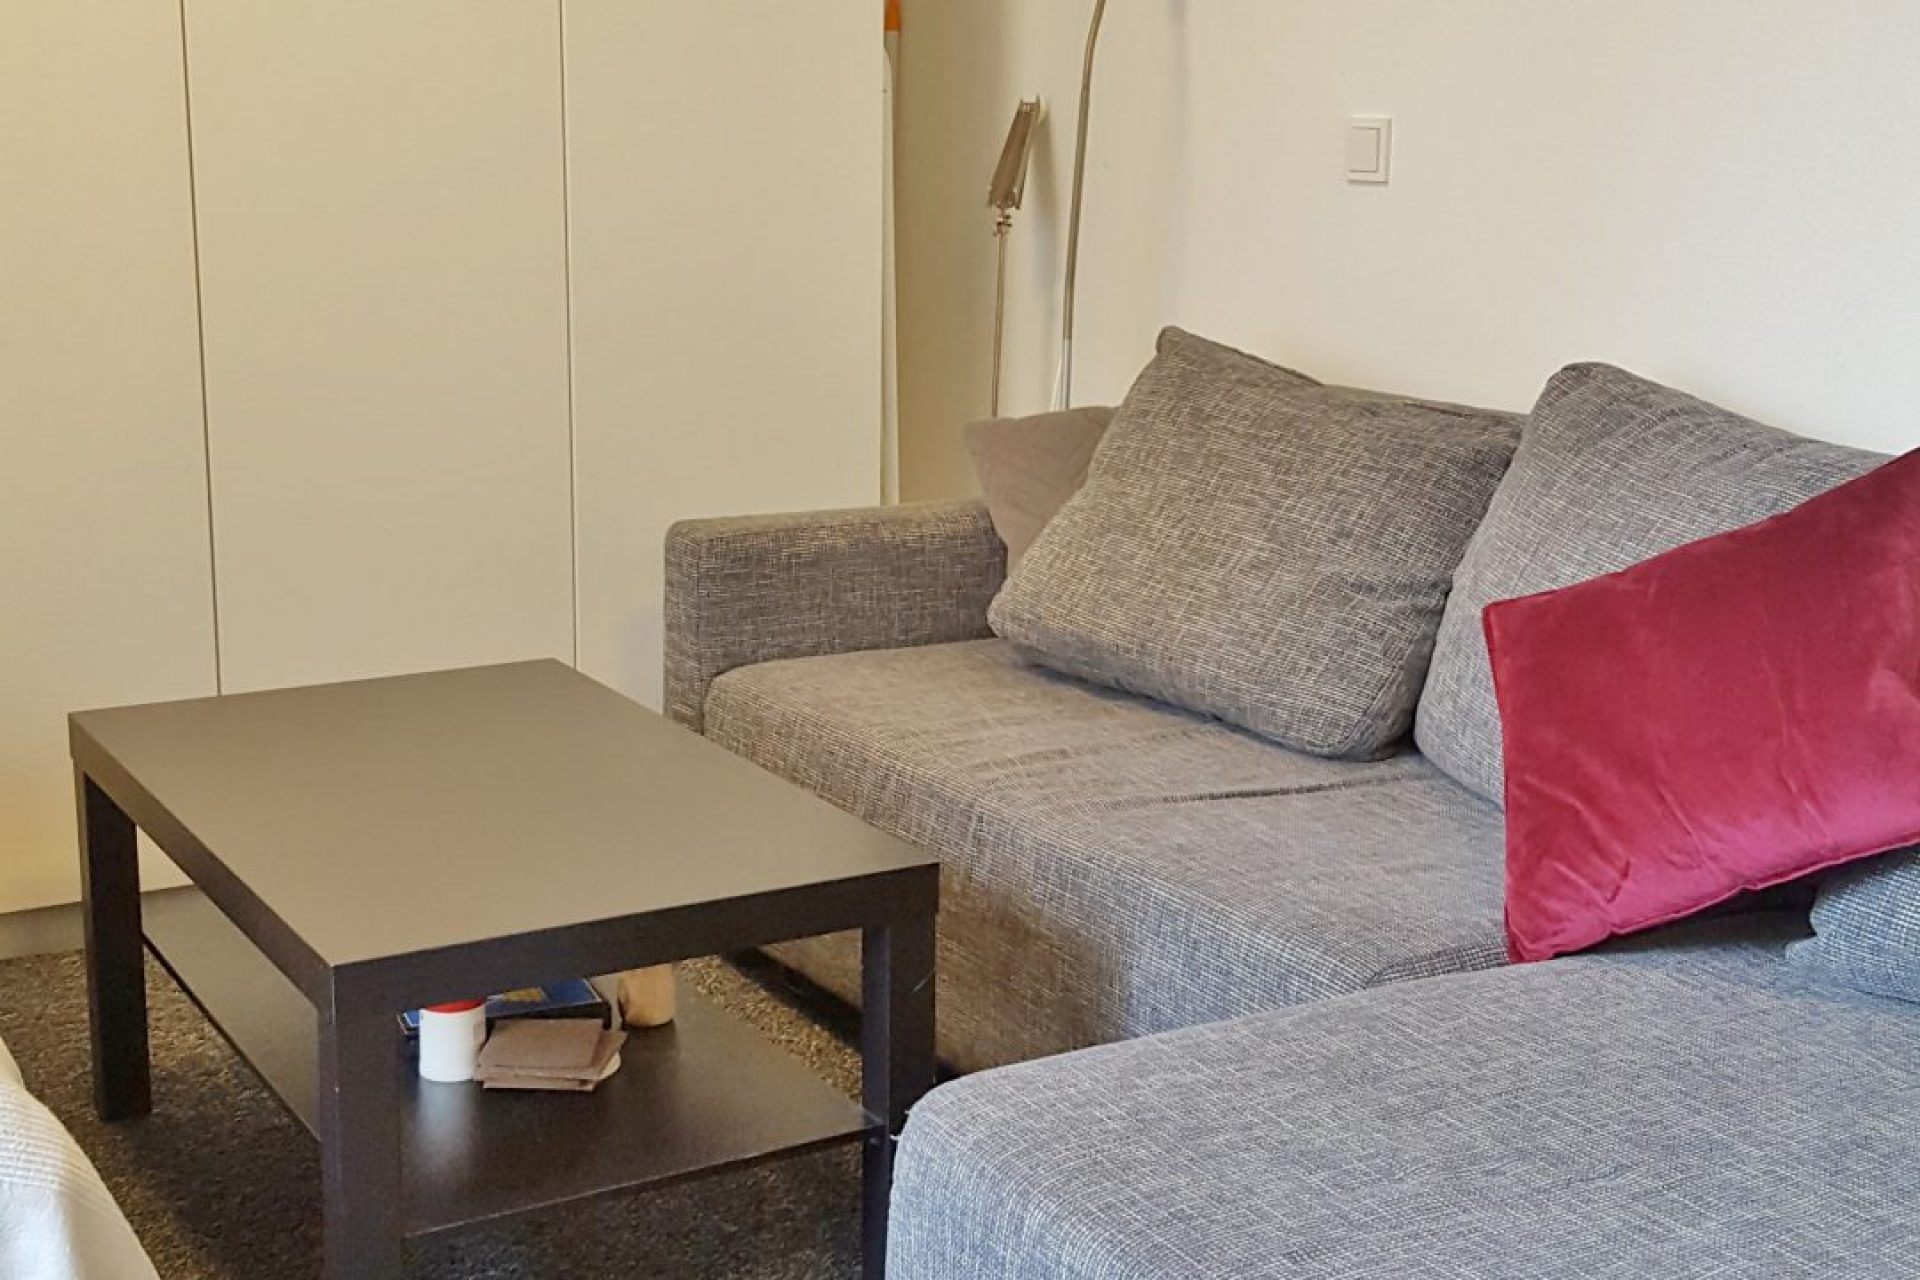 apartment_barrierefrei_niels_3